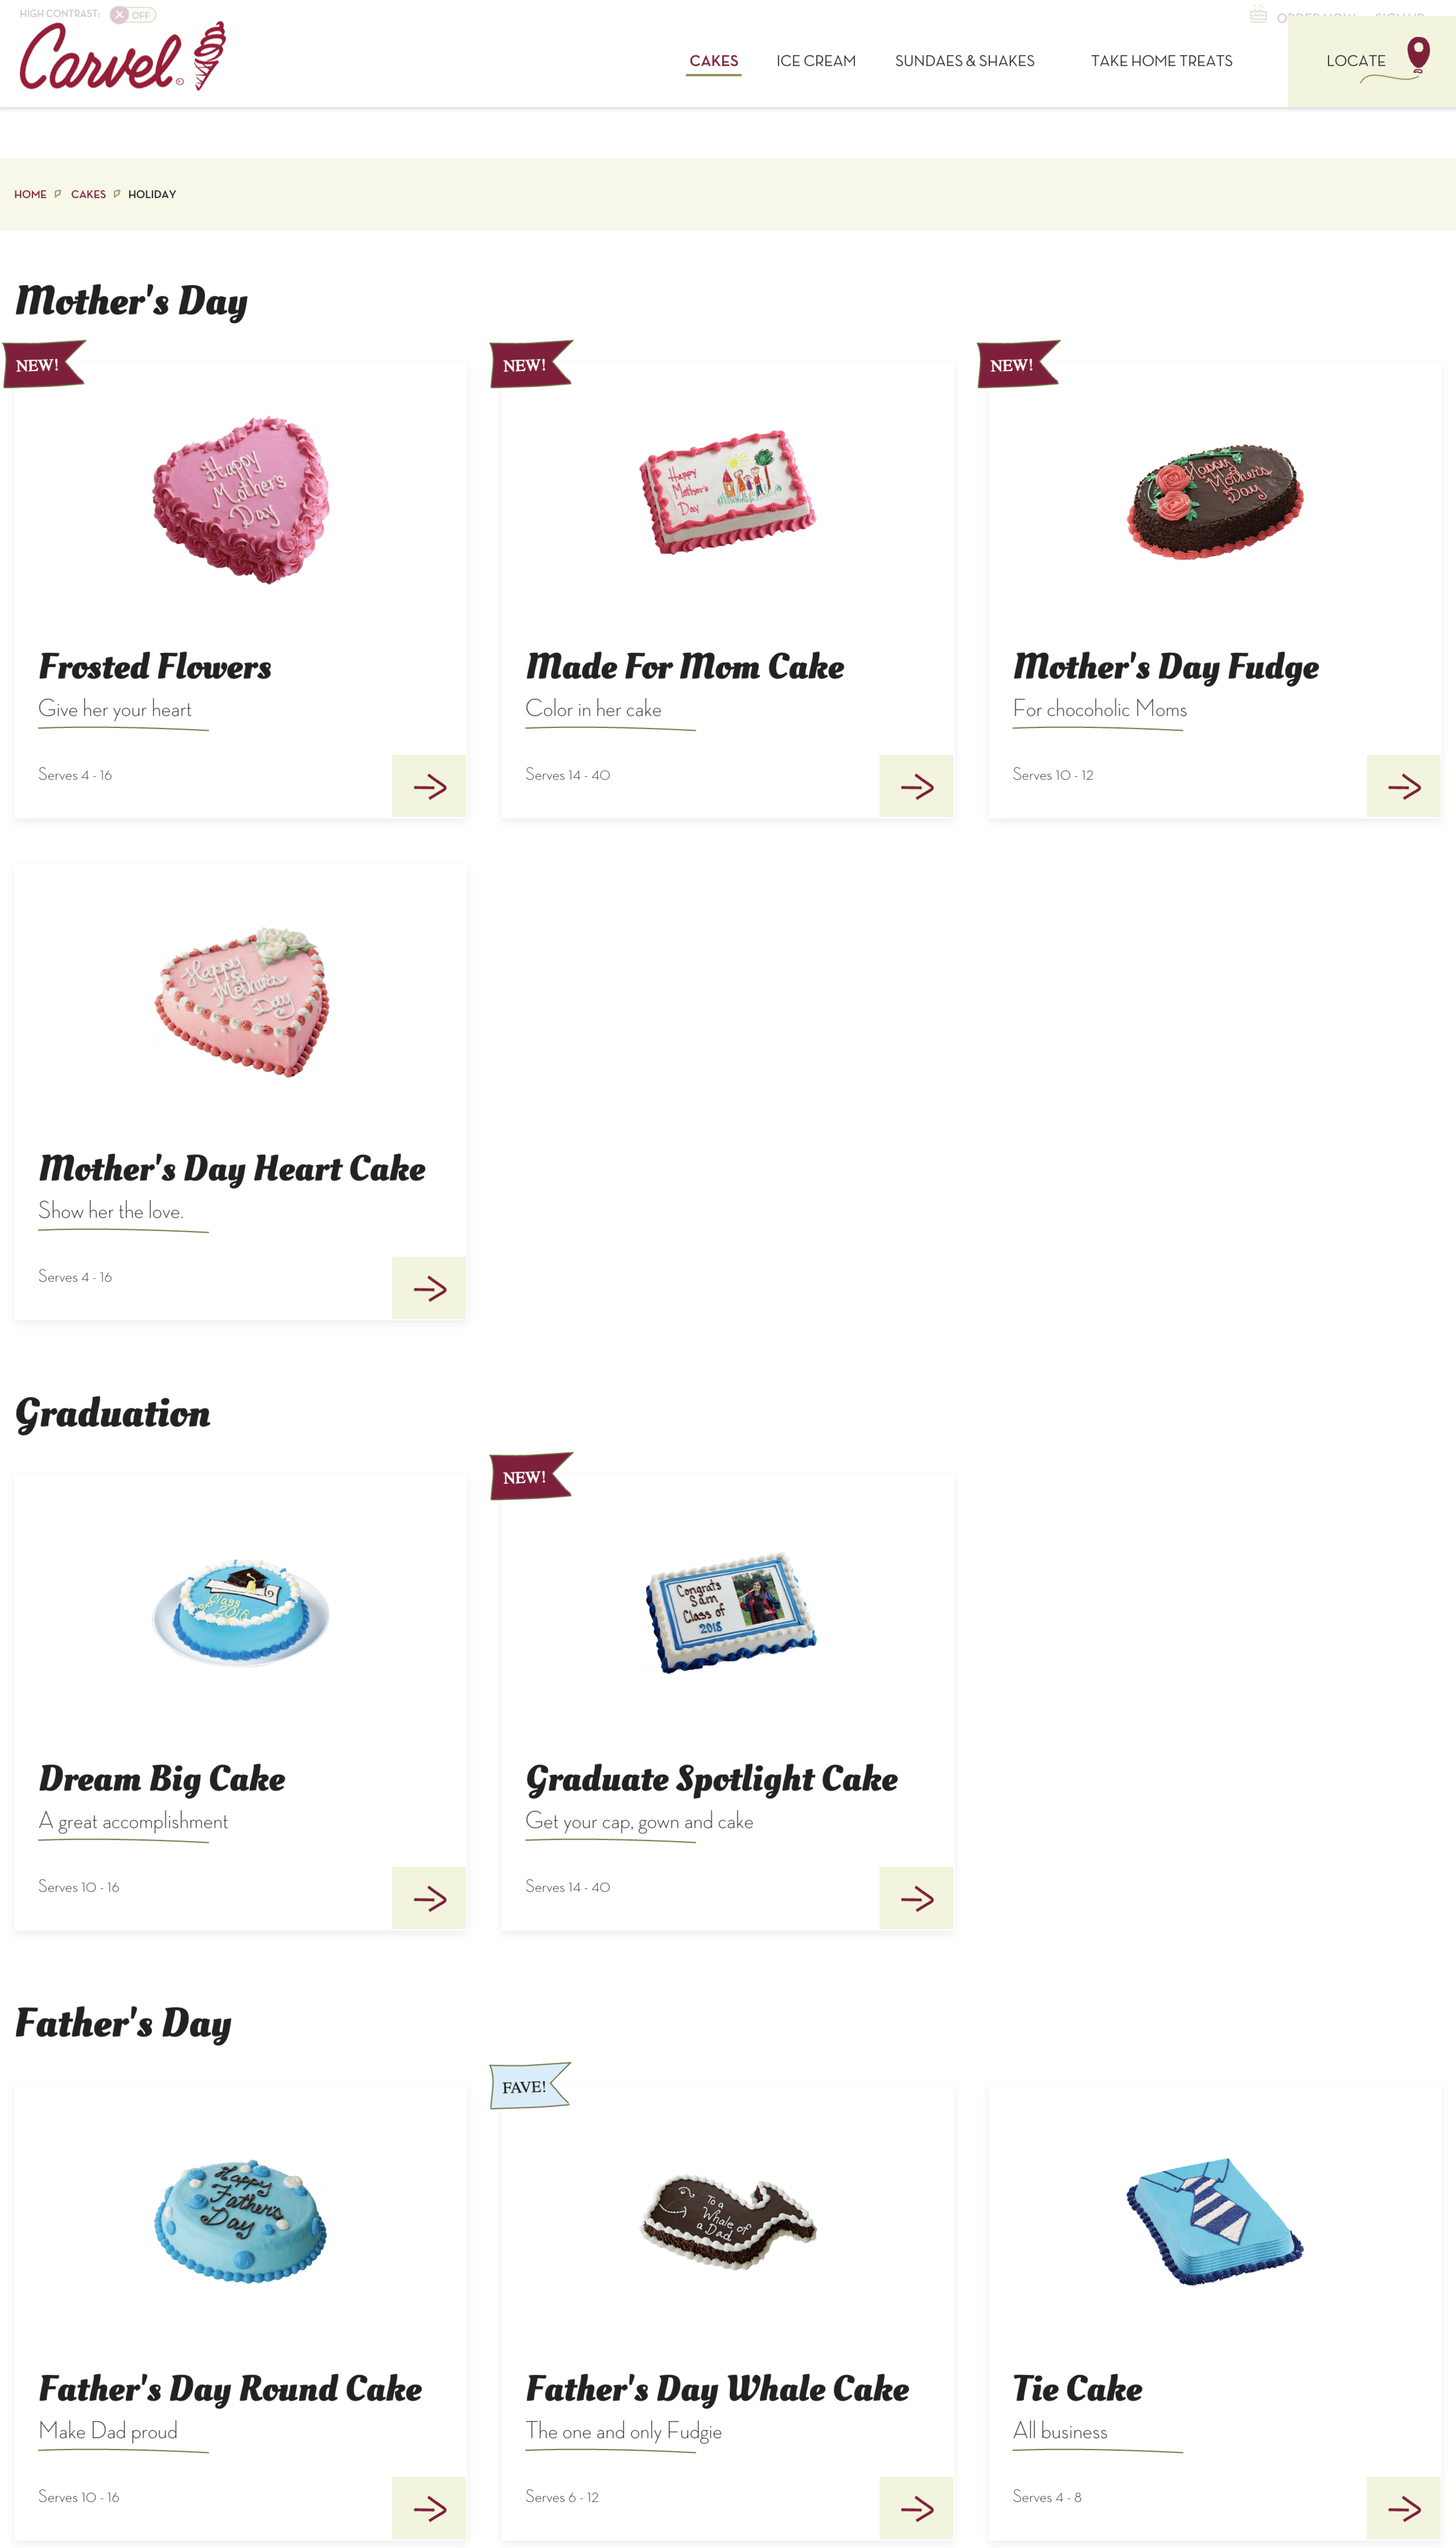 Holiday Cakes - We found out from customers that they typically look for cakes a few weeks before an upcoming event, especially Father's Day, Halloween, and Thanksgiving. By grouping the cakes by holiday then dynamically organizing them by nearest date we improved the customer experience and improved the workflow for our content managers.